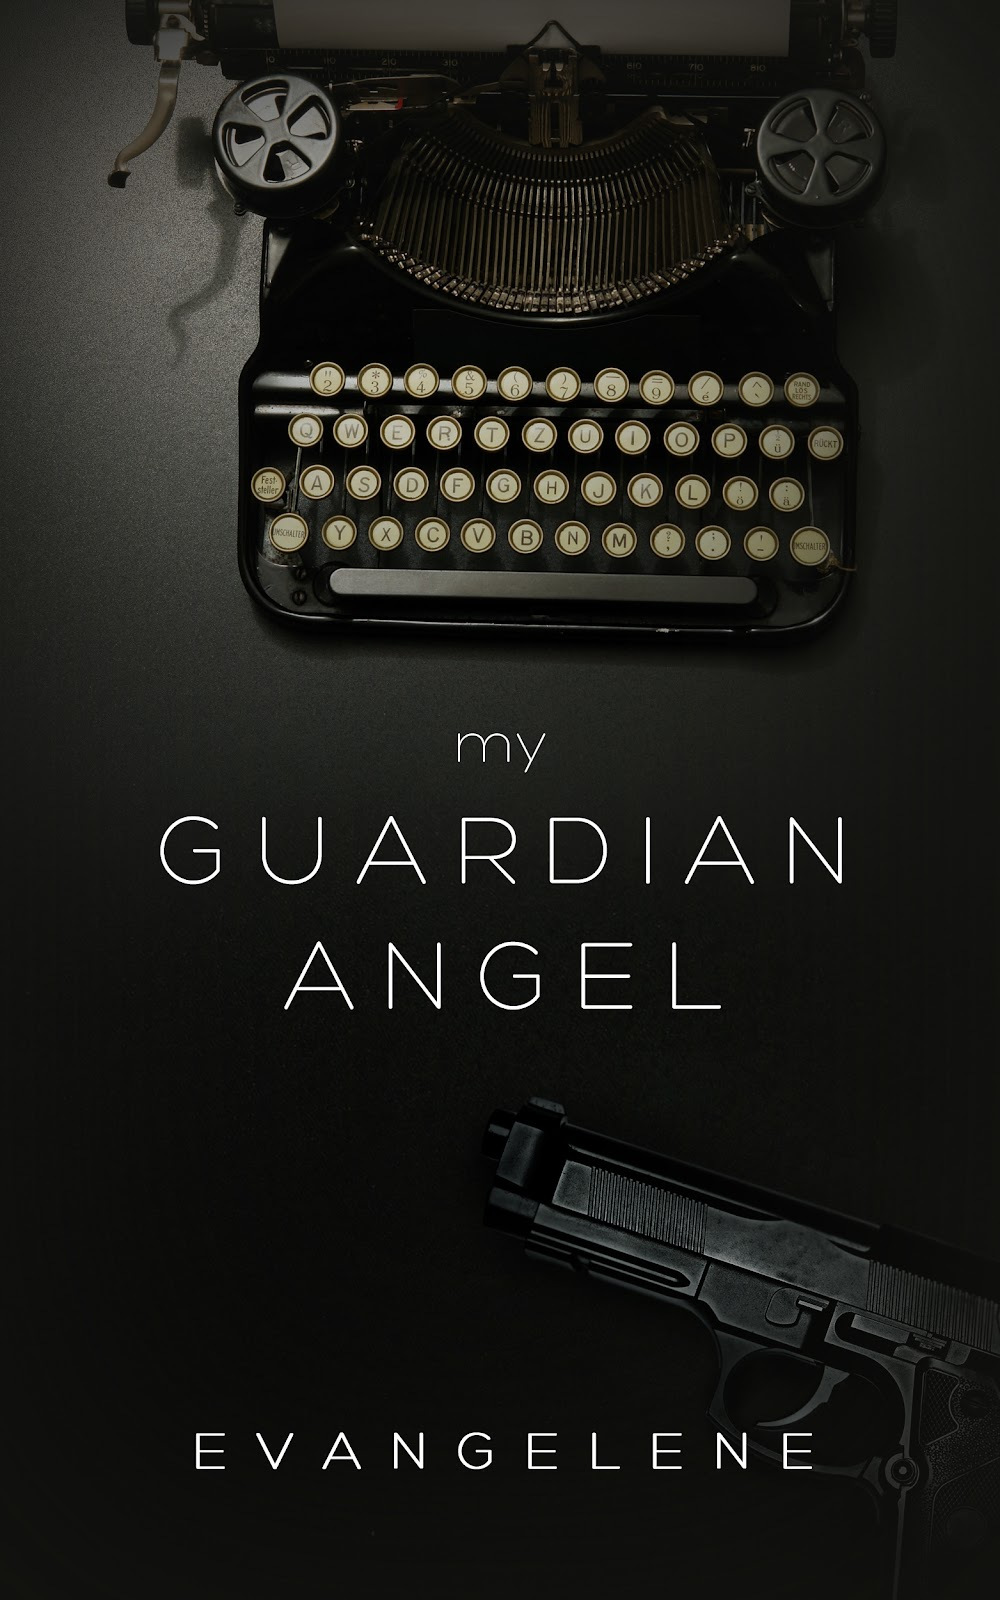 My Guardian Angel_01c_ebook.jpg